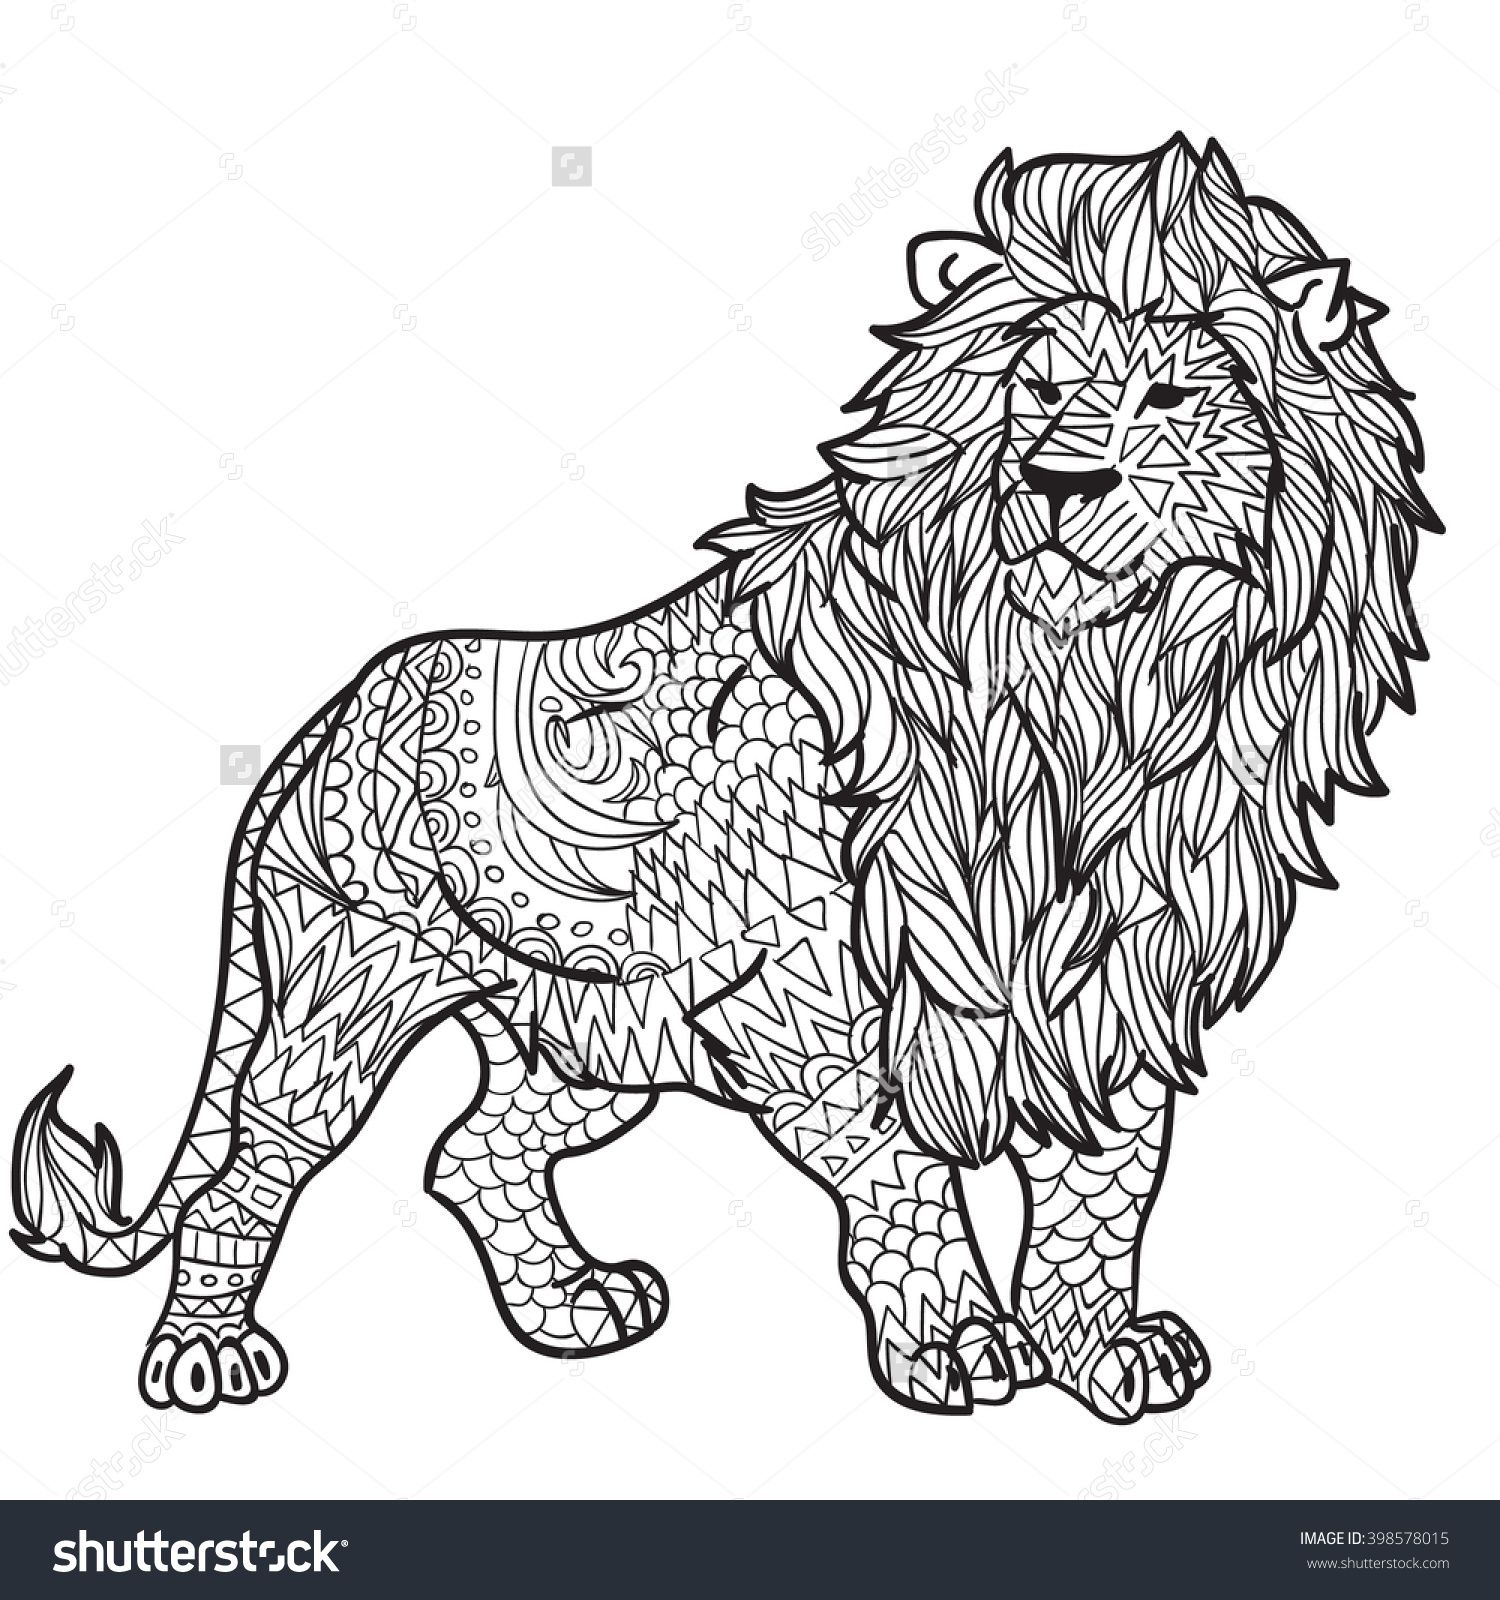 Wild lion Adult Coloring Page Print Wild lion and Adult coloring